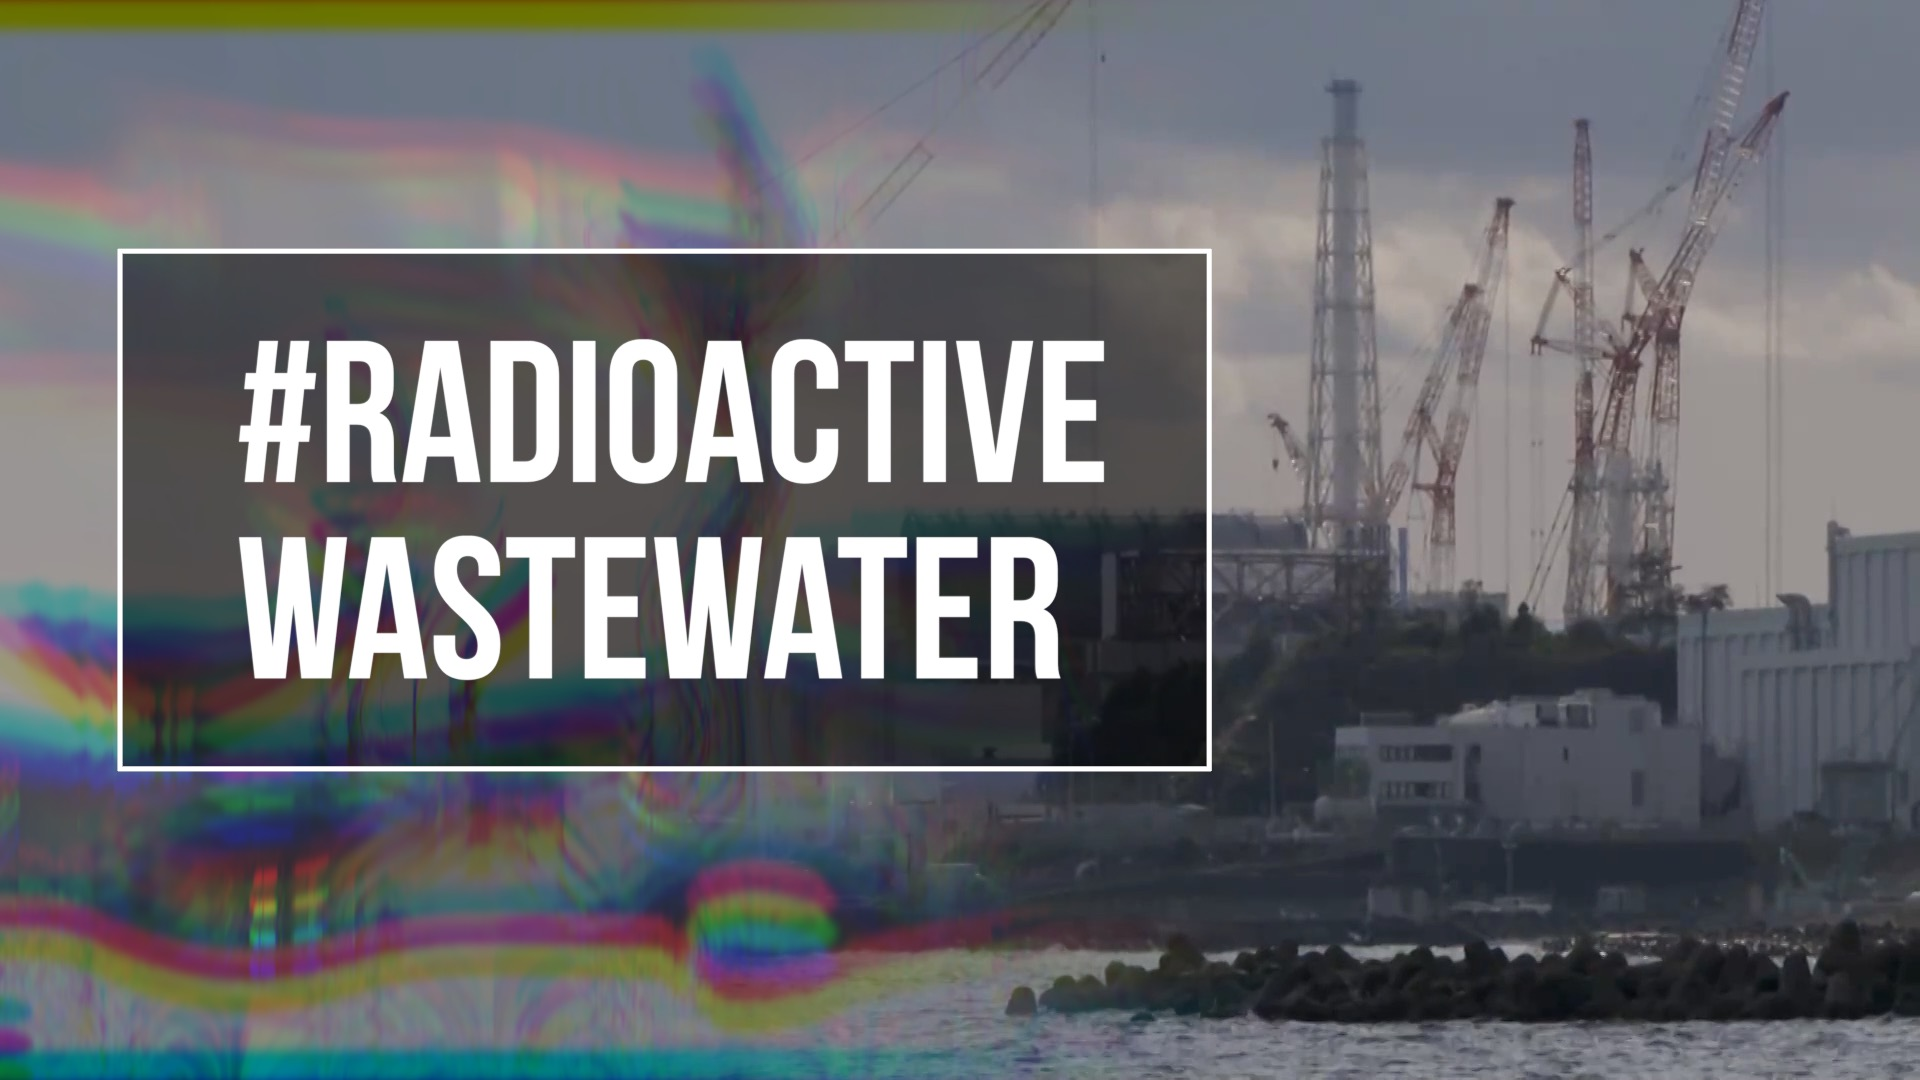 GLOBALink | Japan's decision to dump Fukushima wastewater sparks outcry on social media